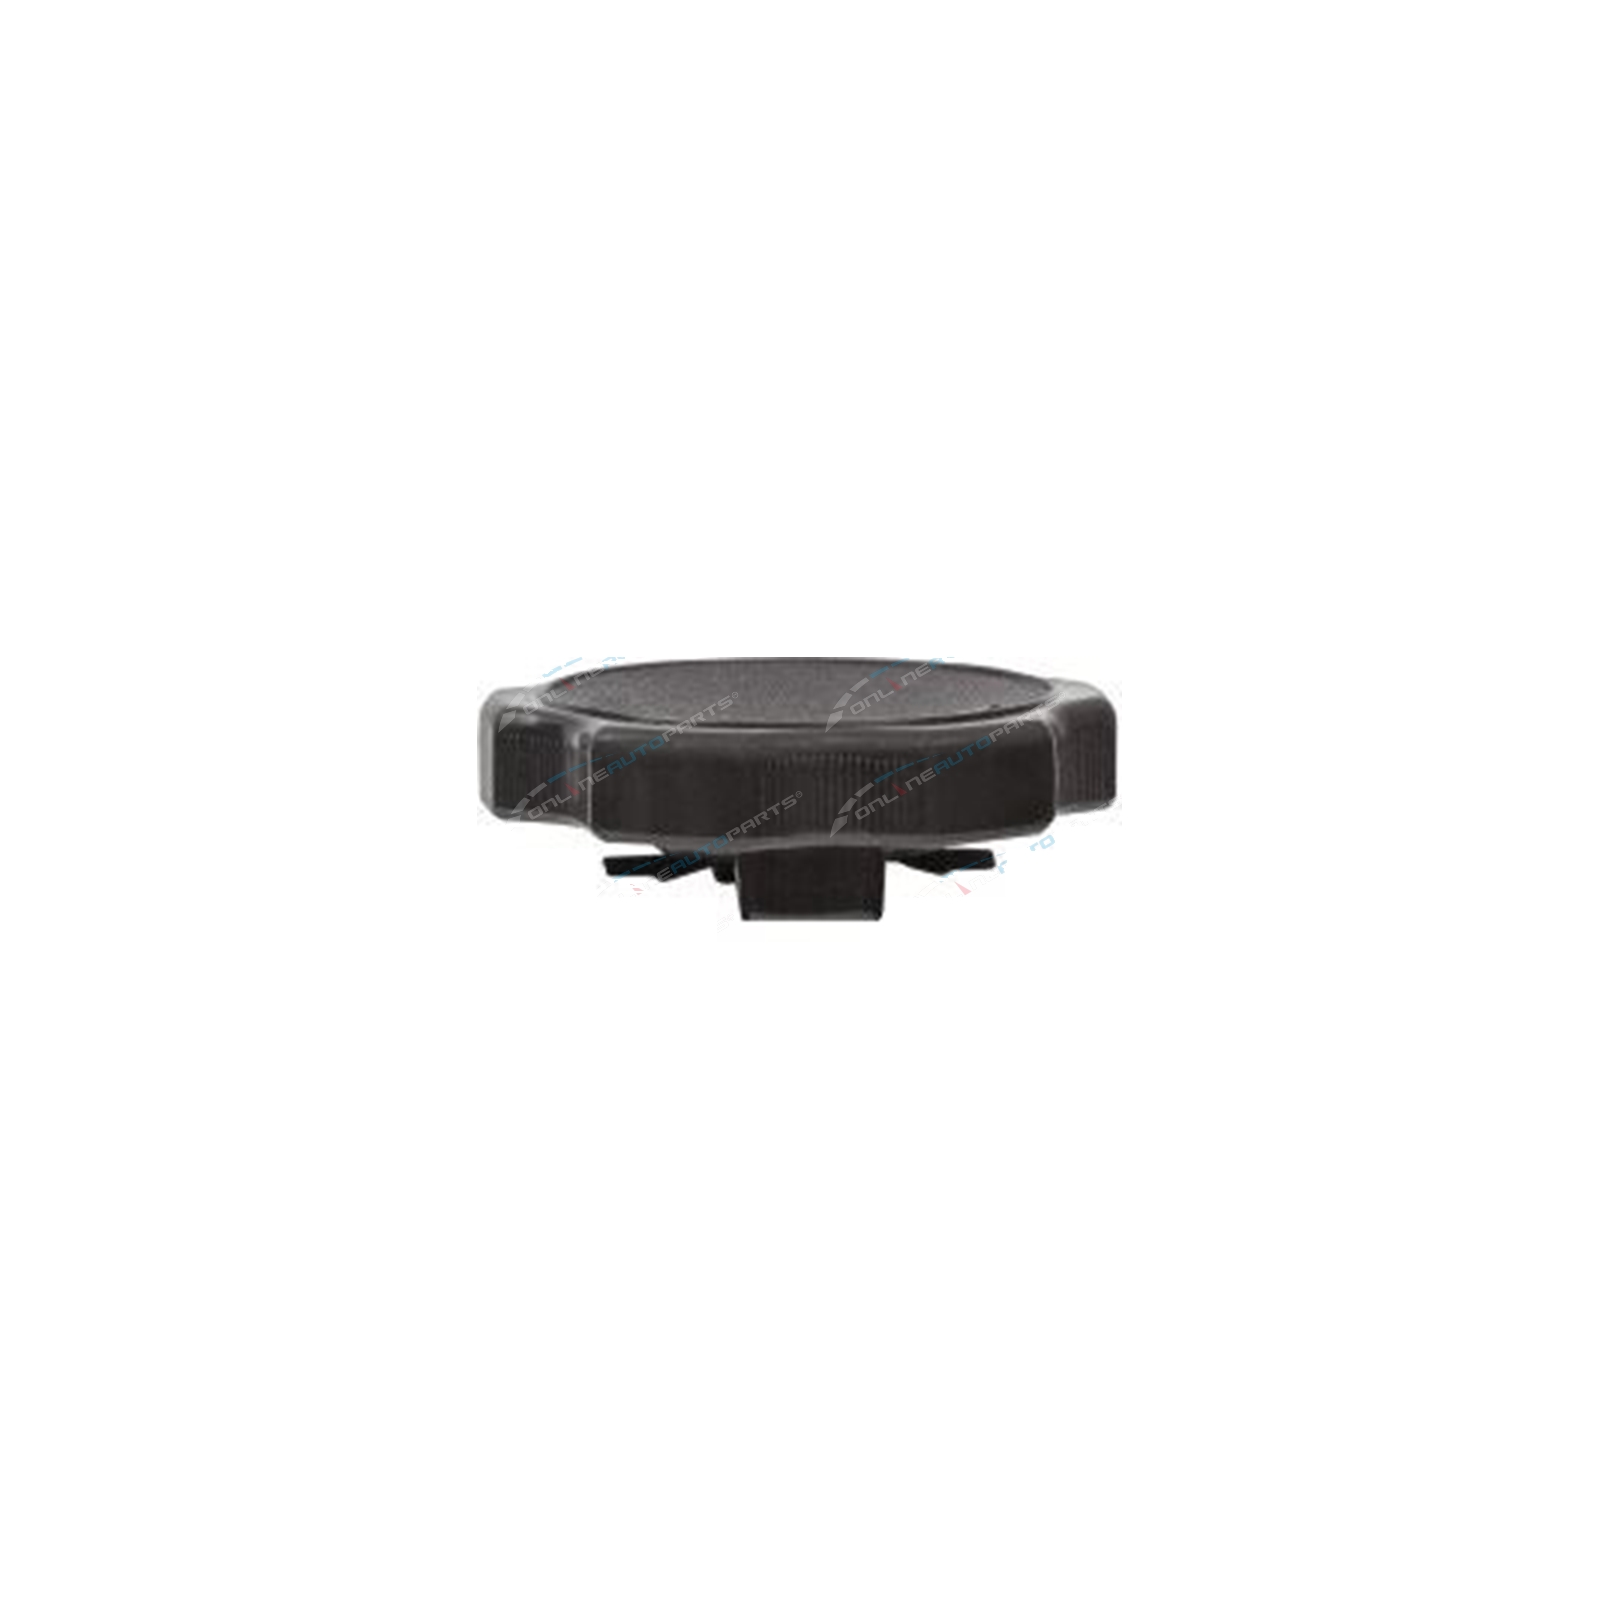 TOC509 - Engine Oil Cap Plastic bayonet - Tridon